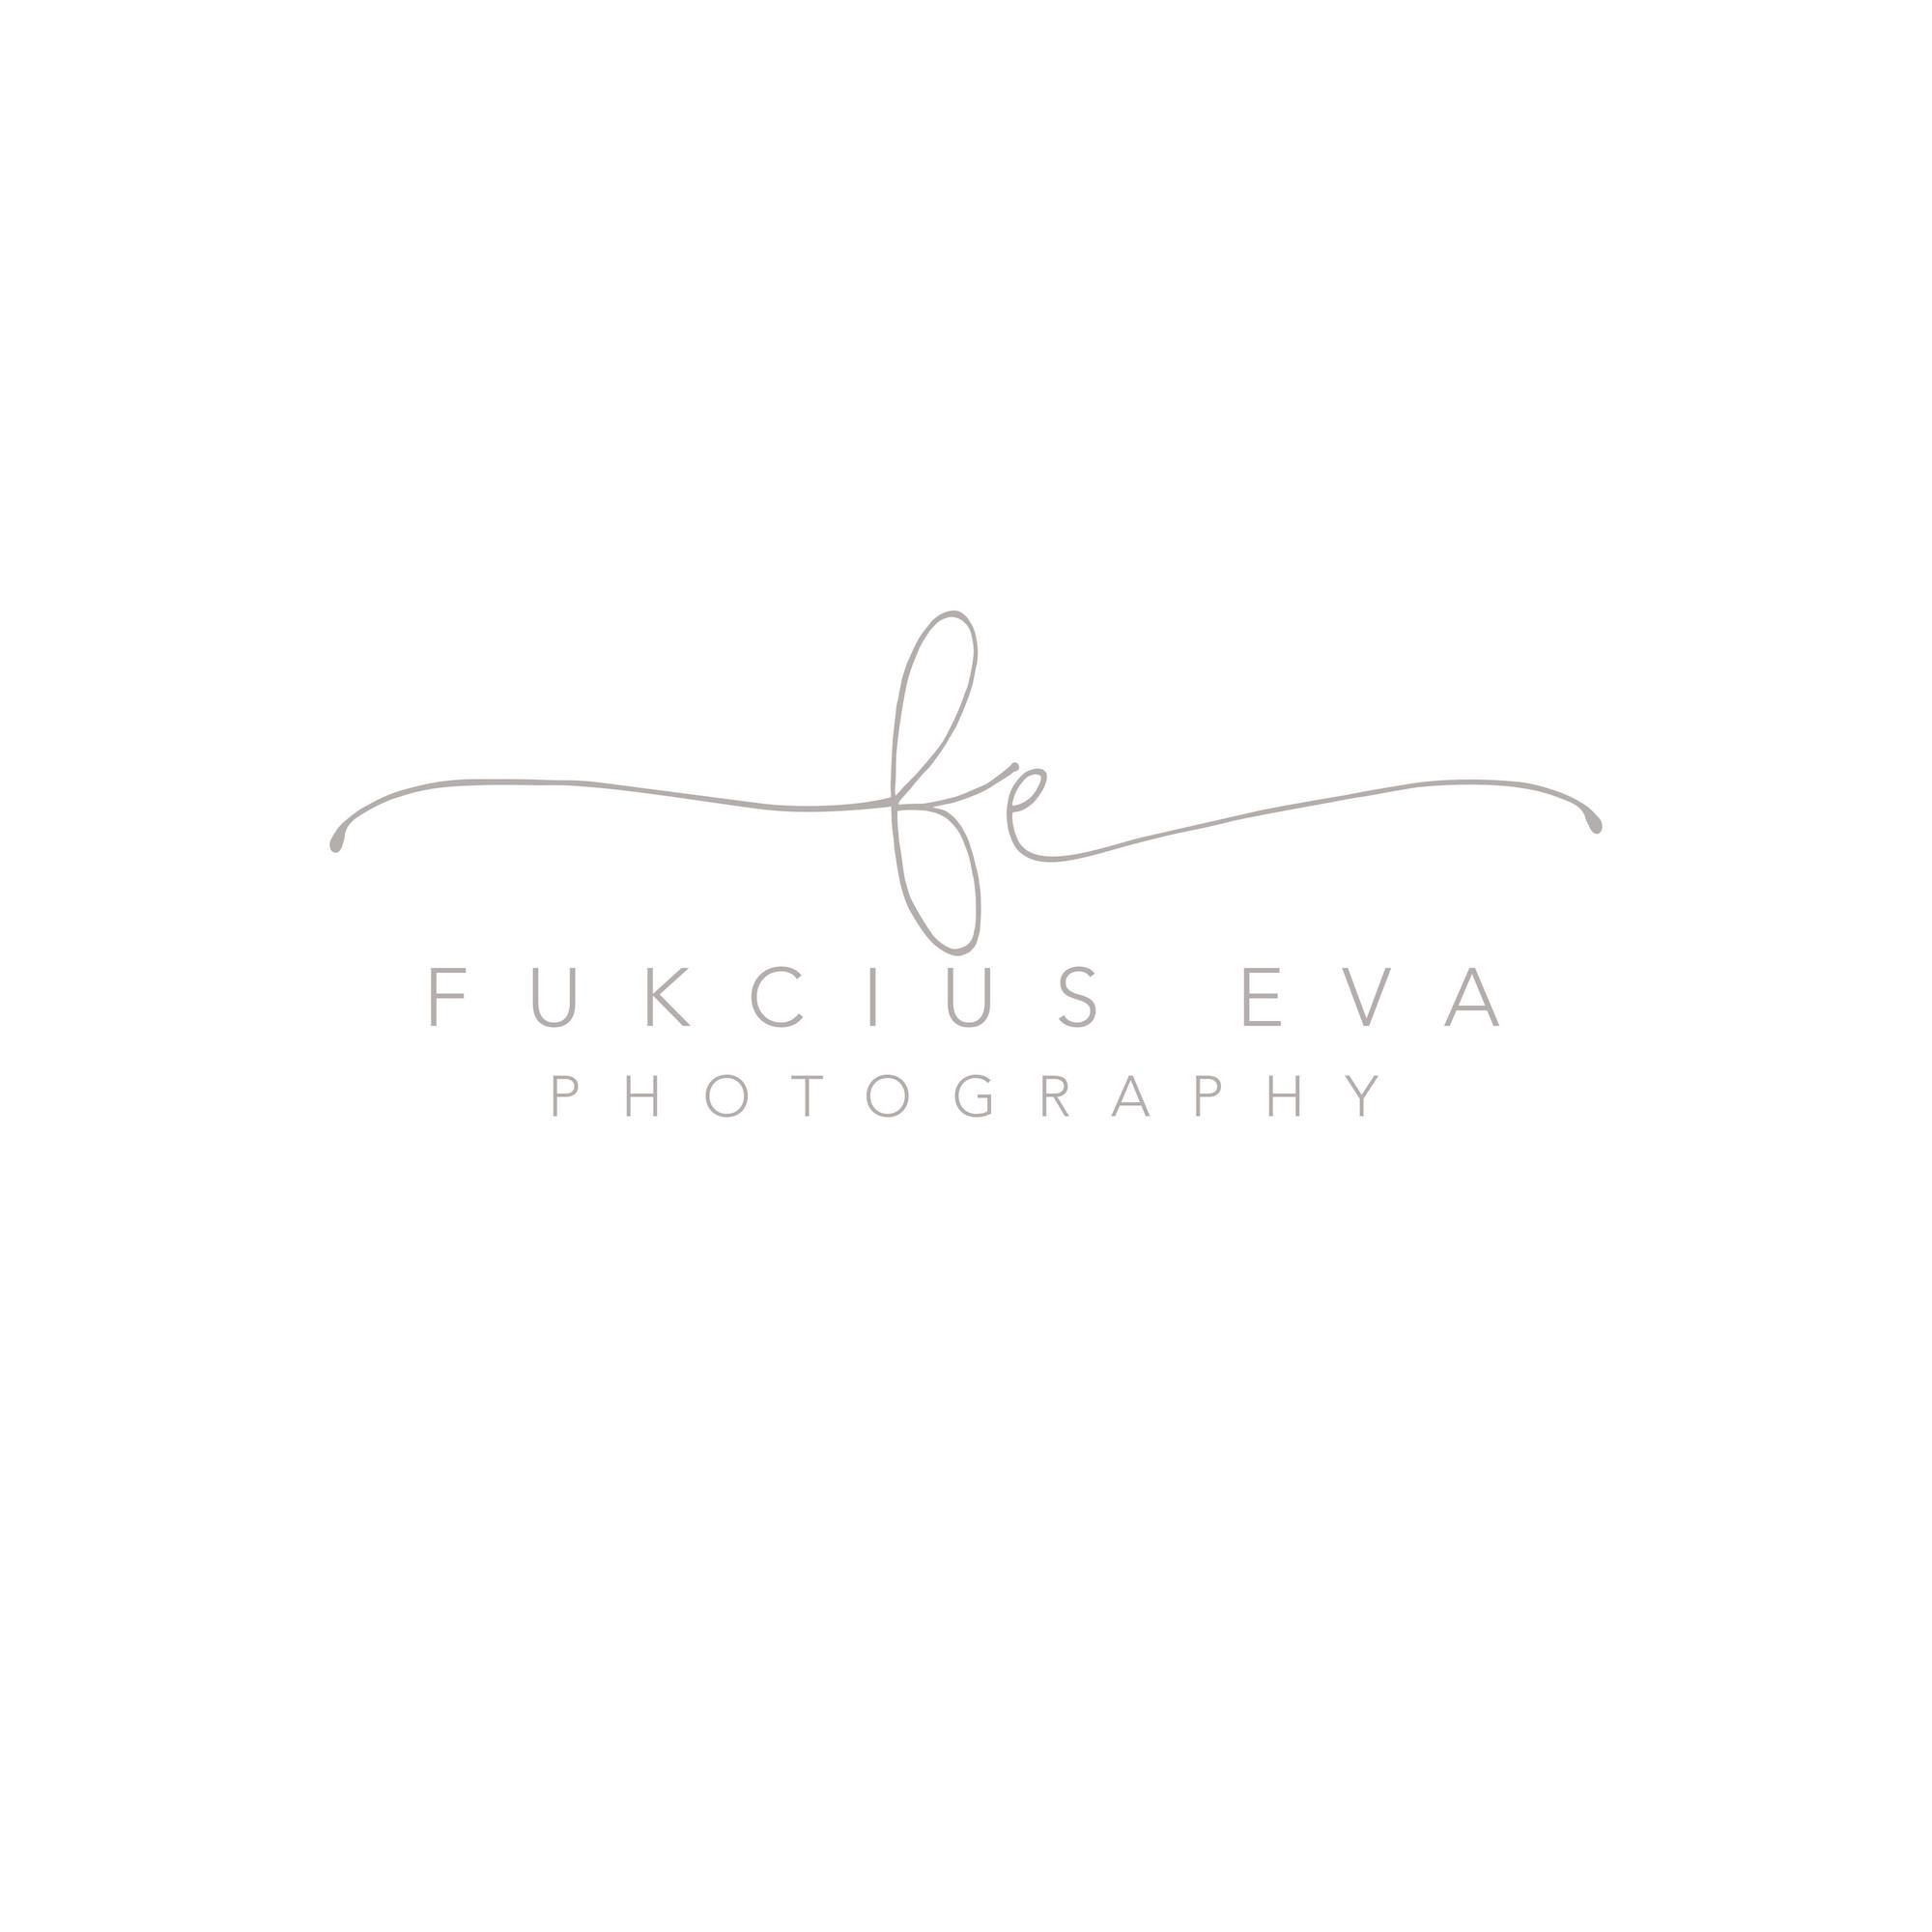 Fukcius Éva Photography